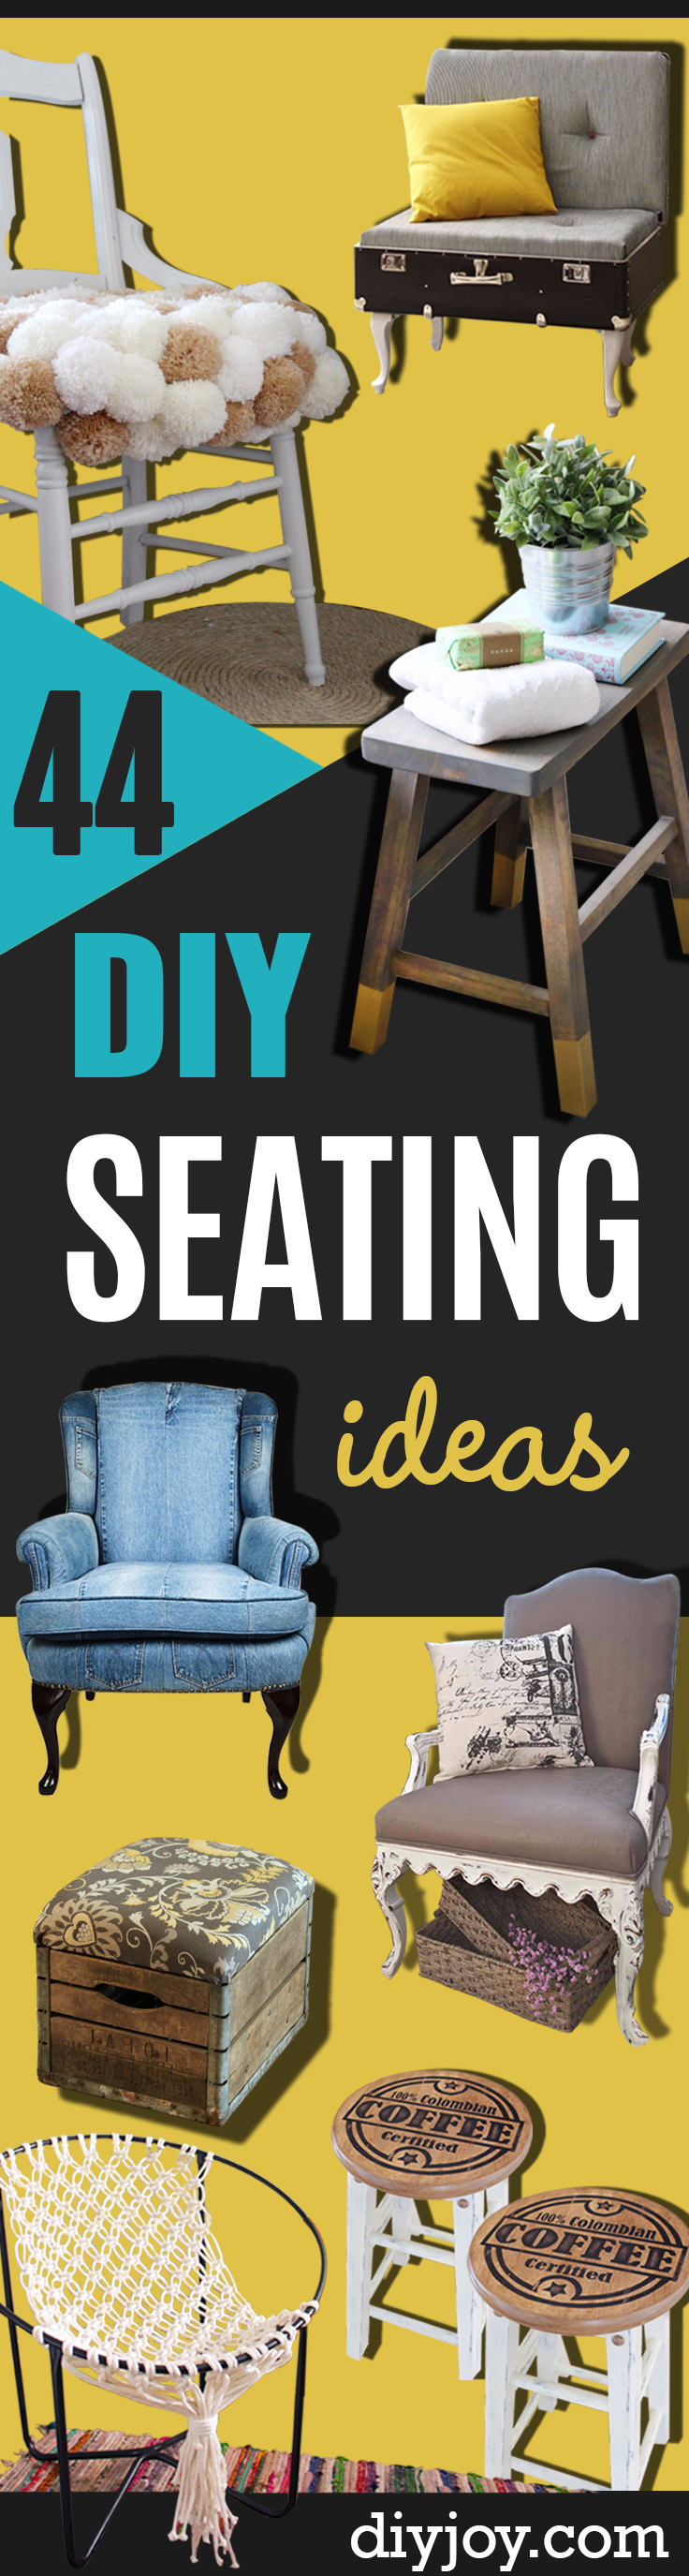 45 Creative DIY Seating Ideas